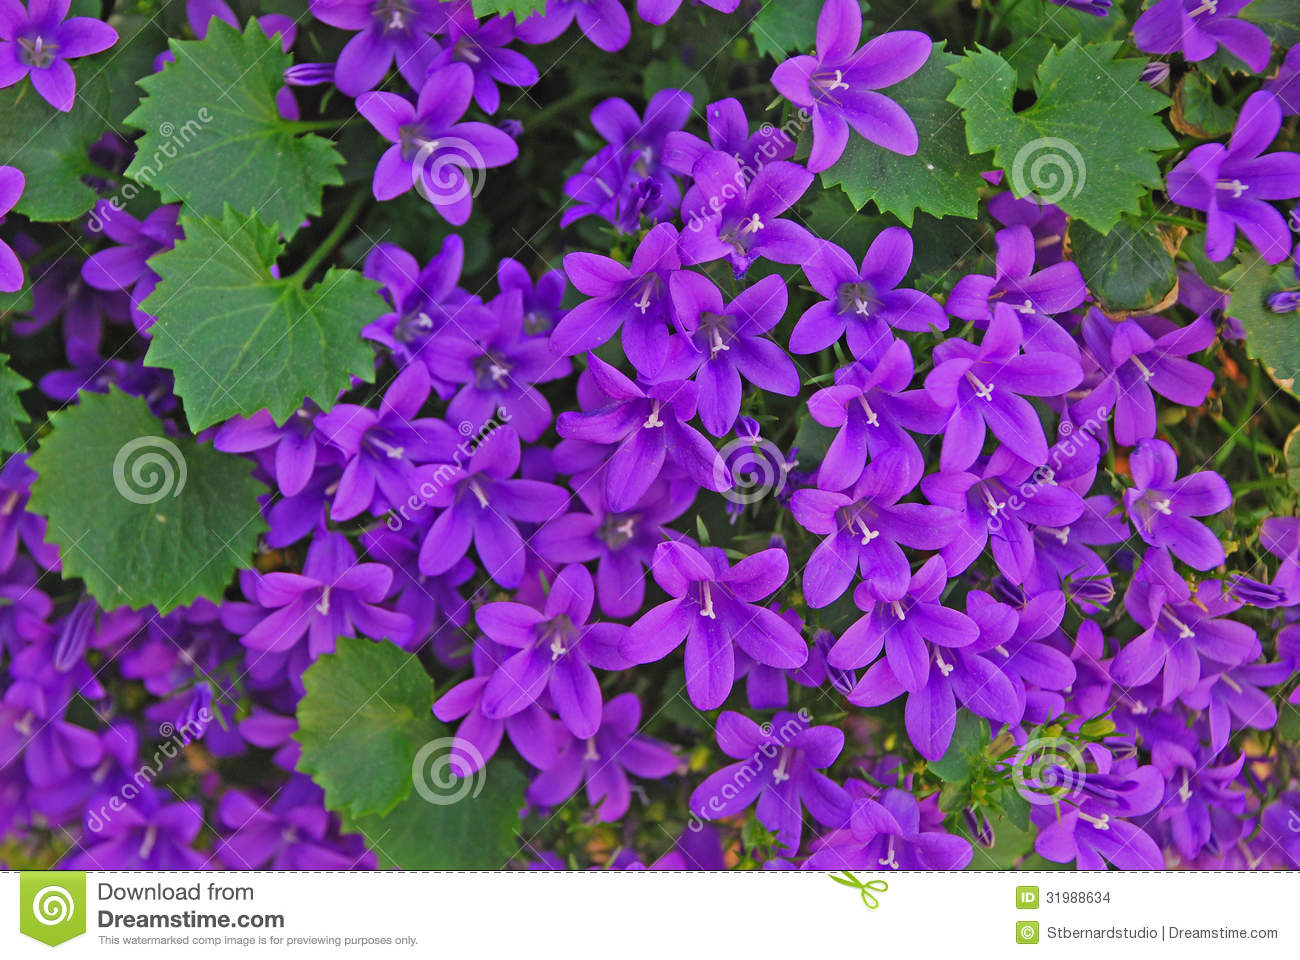 Tiny little purple bell flowers stock photo image of vivid plants download tiny little purple bell flowers stock photo image of vivid plants 31988634 mightylinksfo